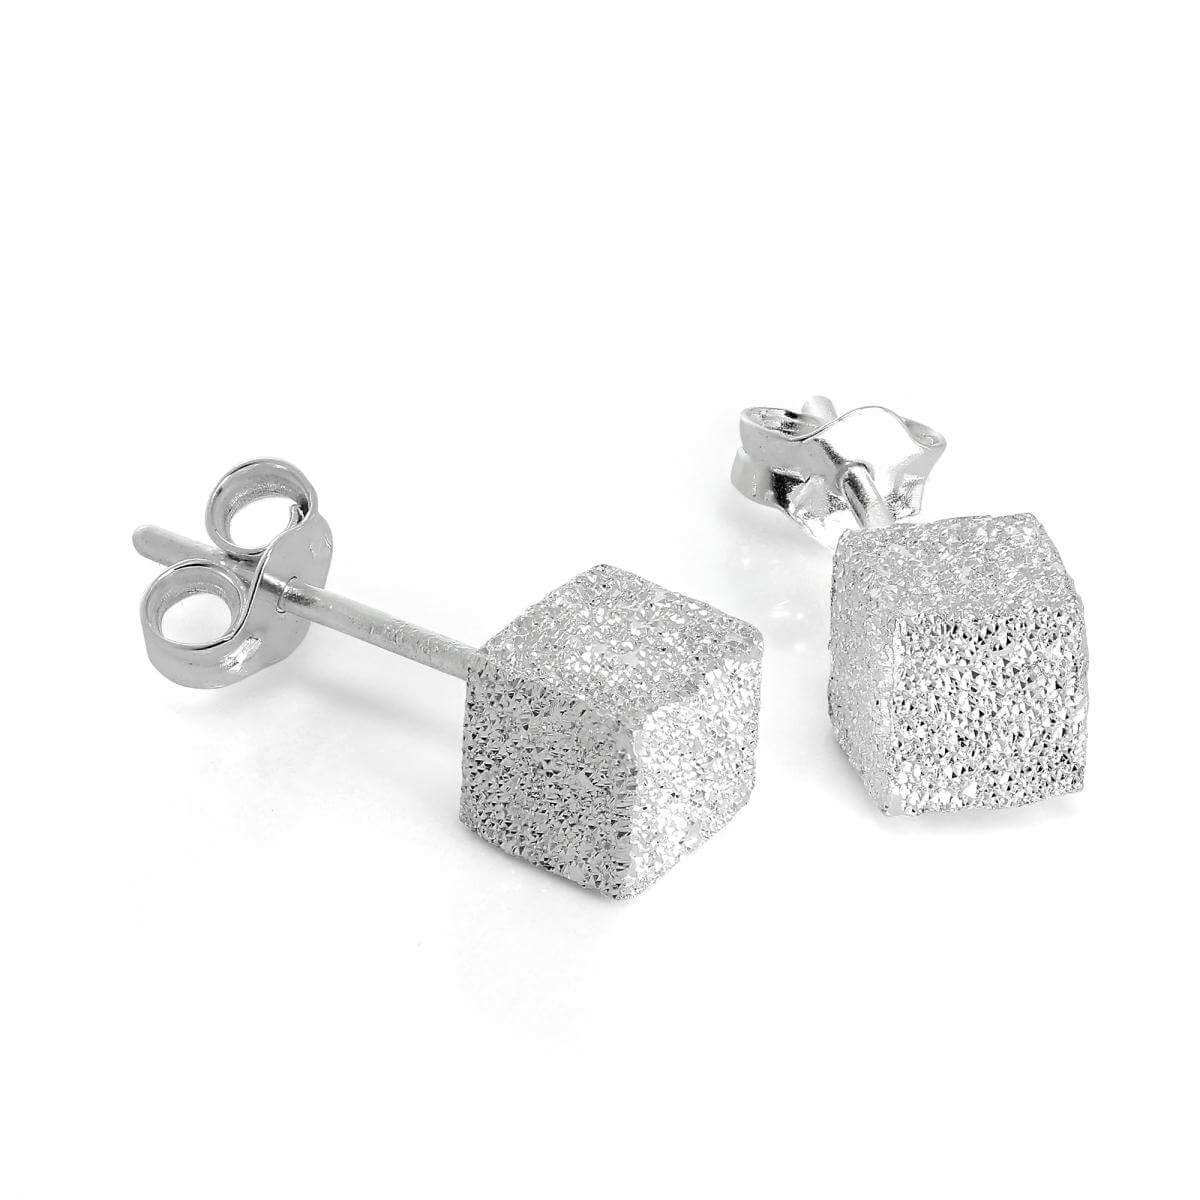 Frosted Sterling Silver 5mm Cube Stud Earrings